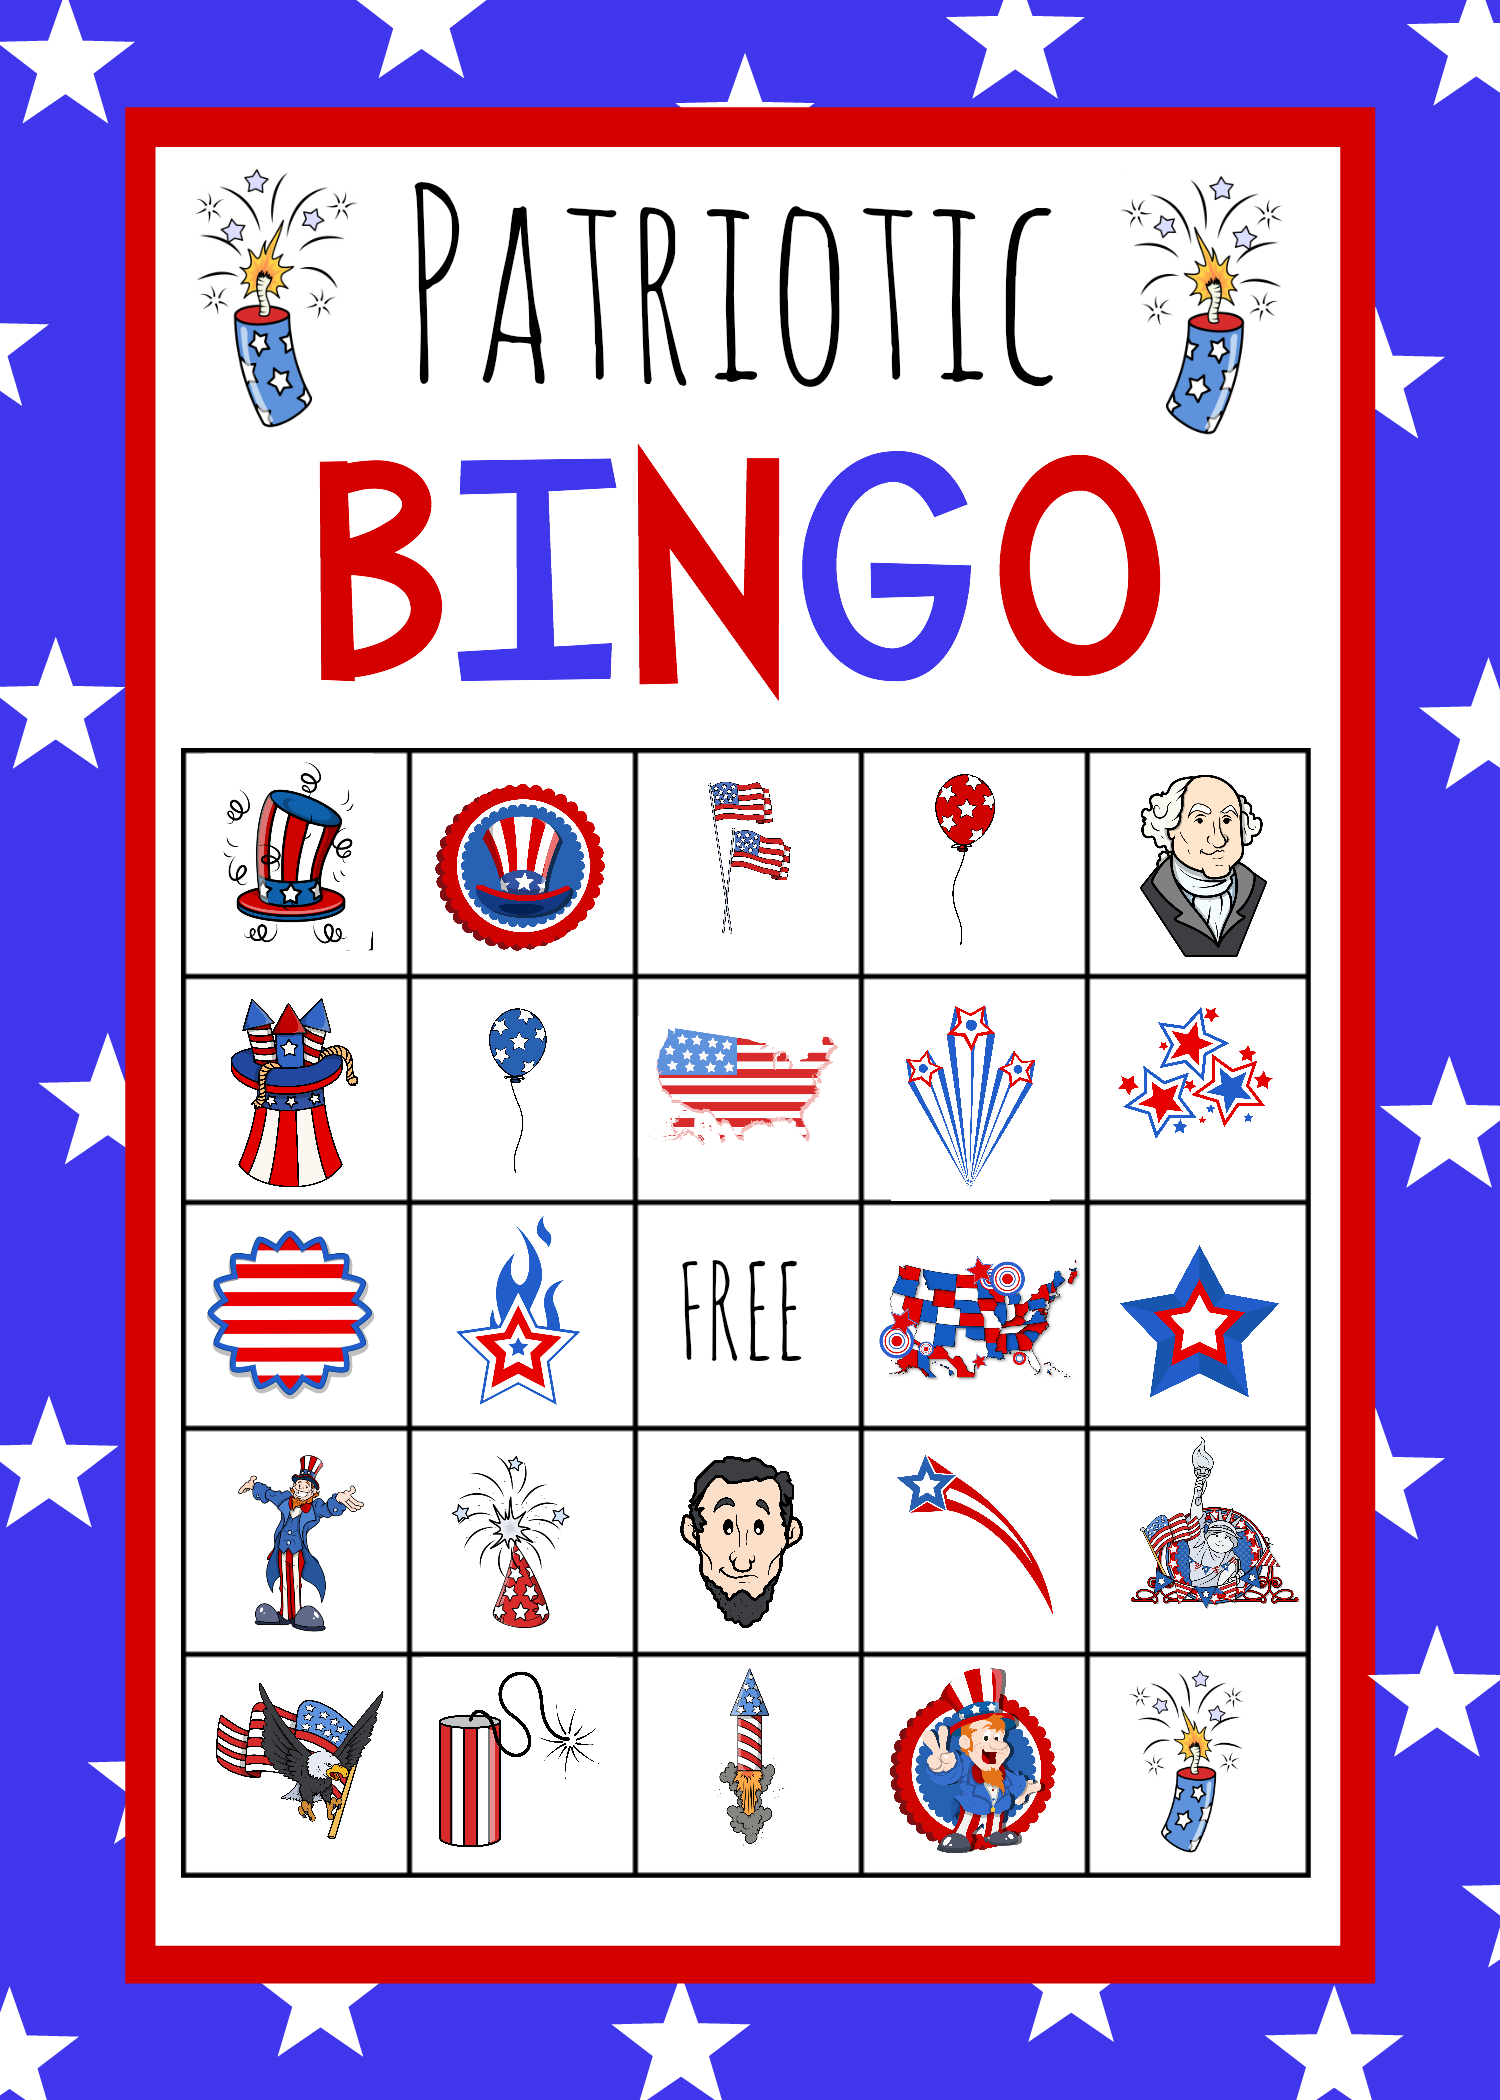 Patriotic 4th Of July Bingo Game To Print 4th Of July Games Patriotic Activities Fourth Of July Crafts For Kids